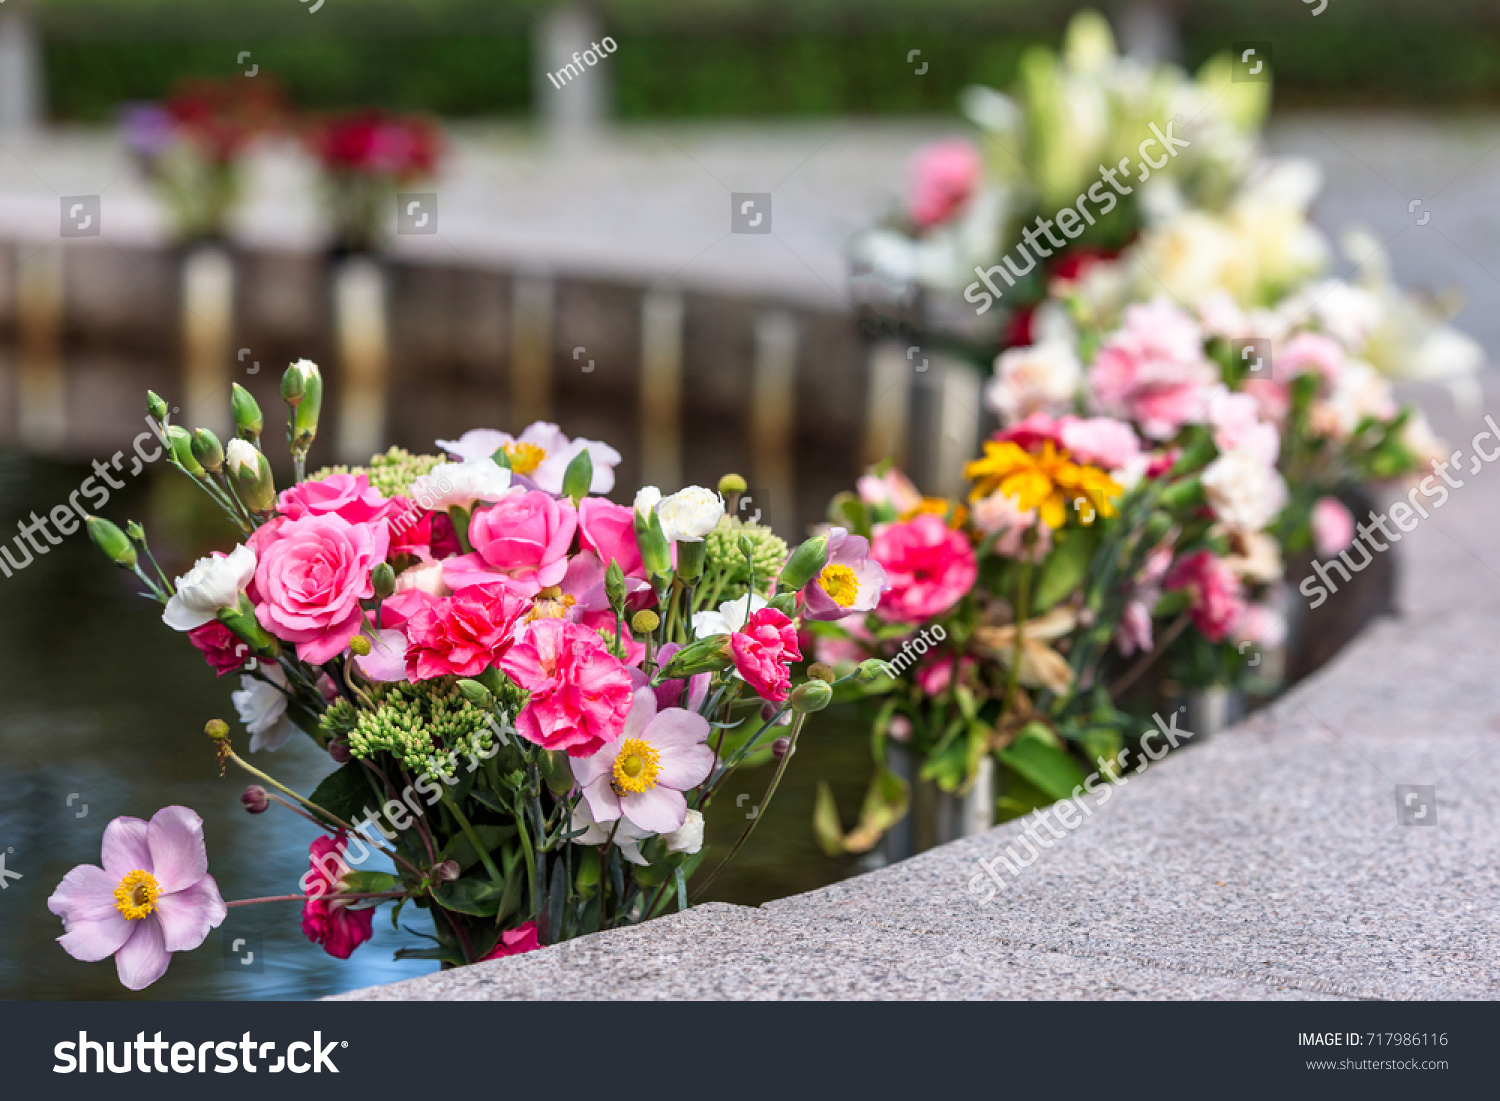 Flower Bouquets For The Dead Beside A Water Pond At A Memorial Site